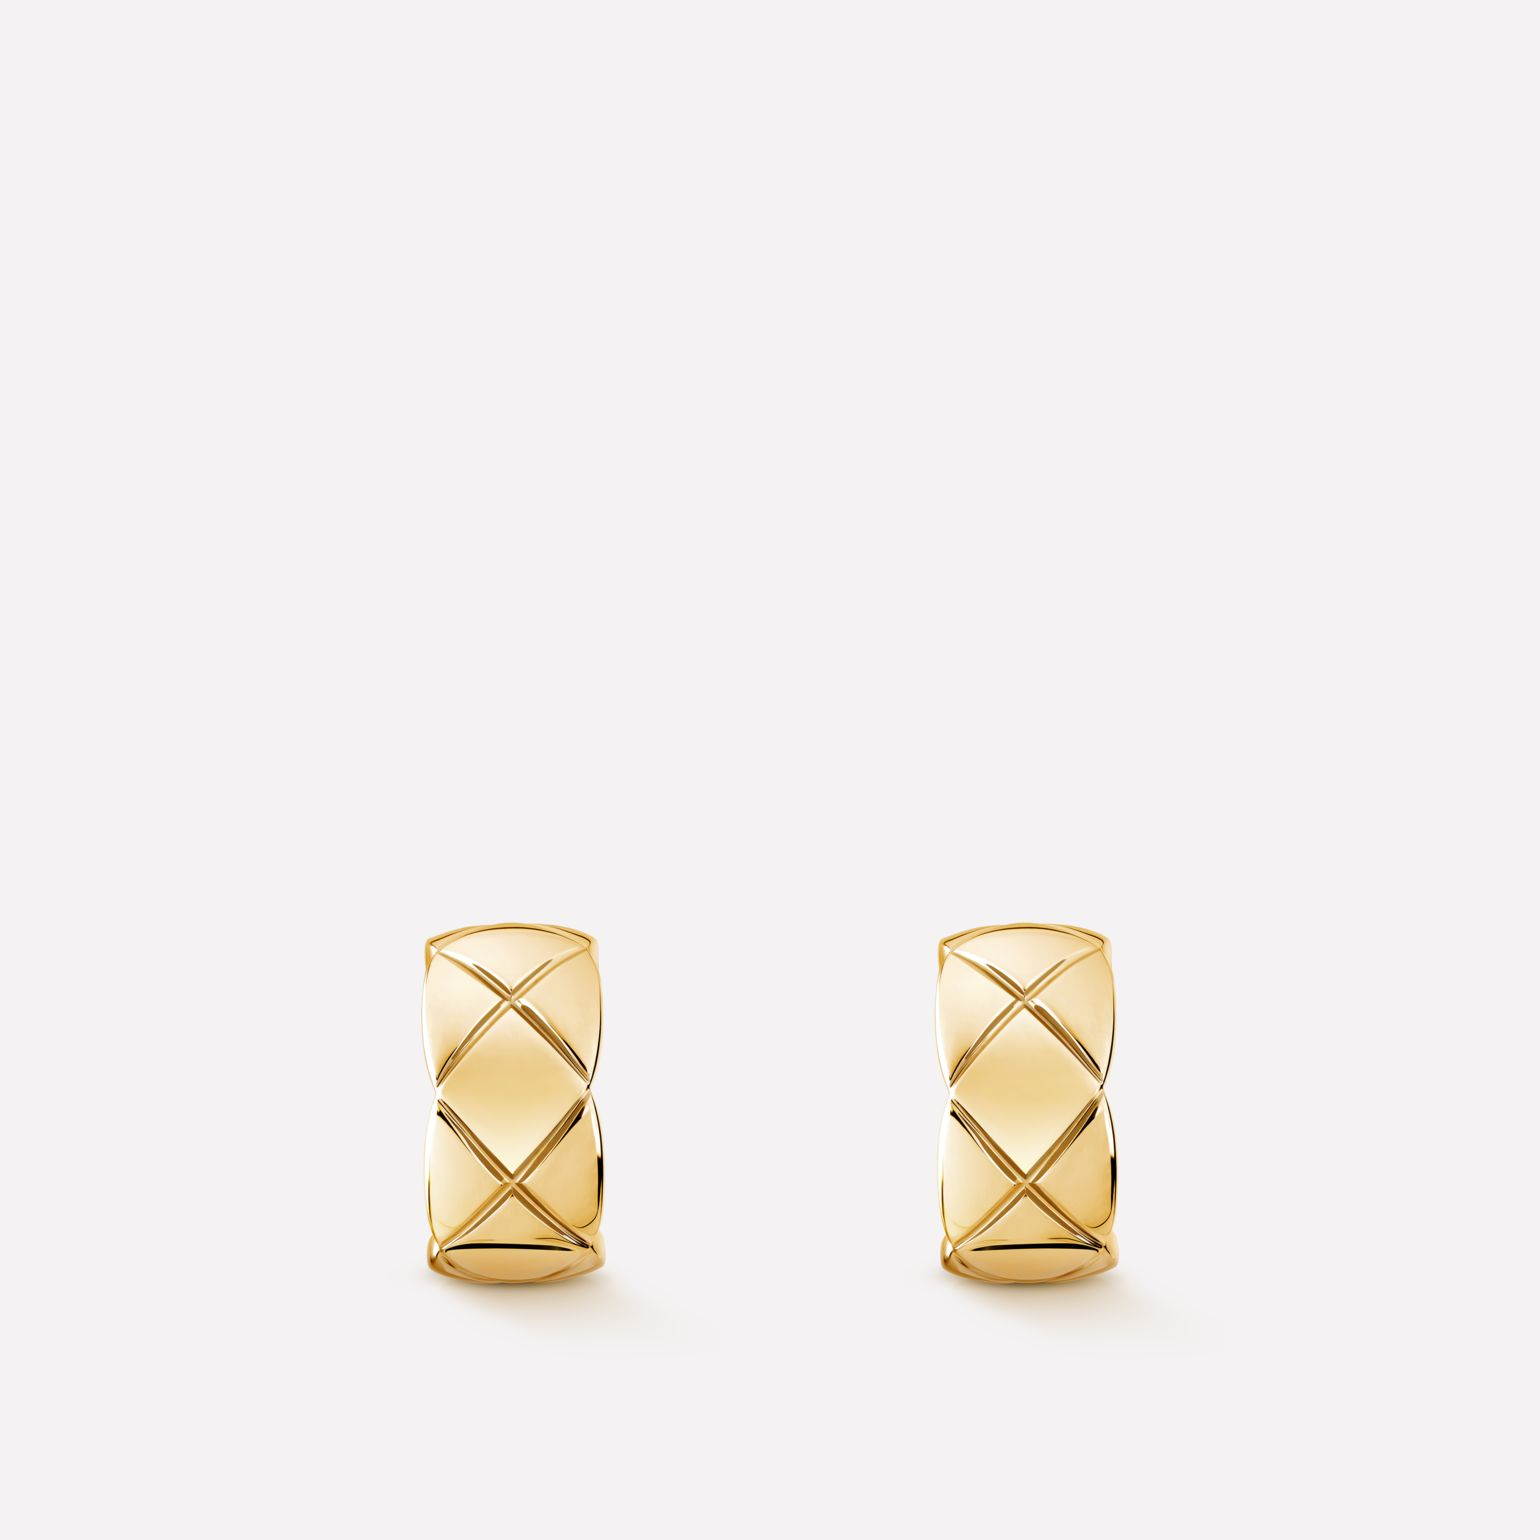 Coco Crush earrings Quilted motif earrings in 18K yellow gold